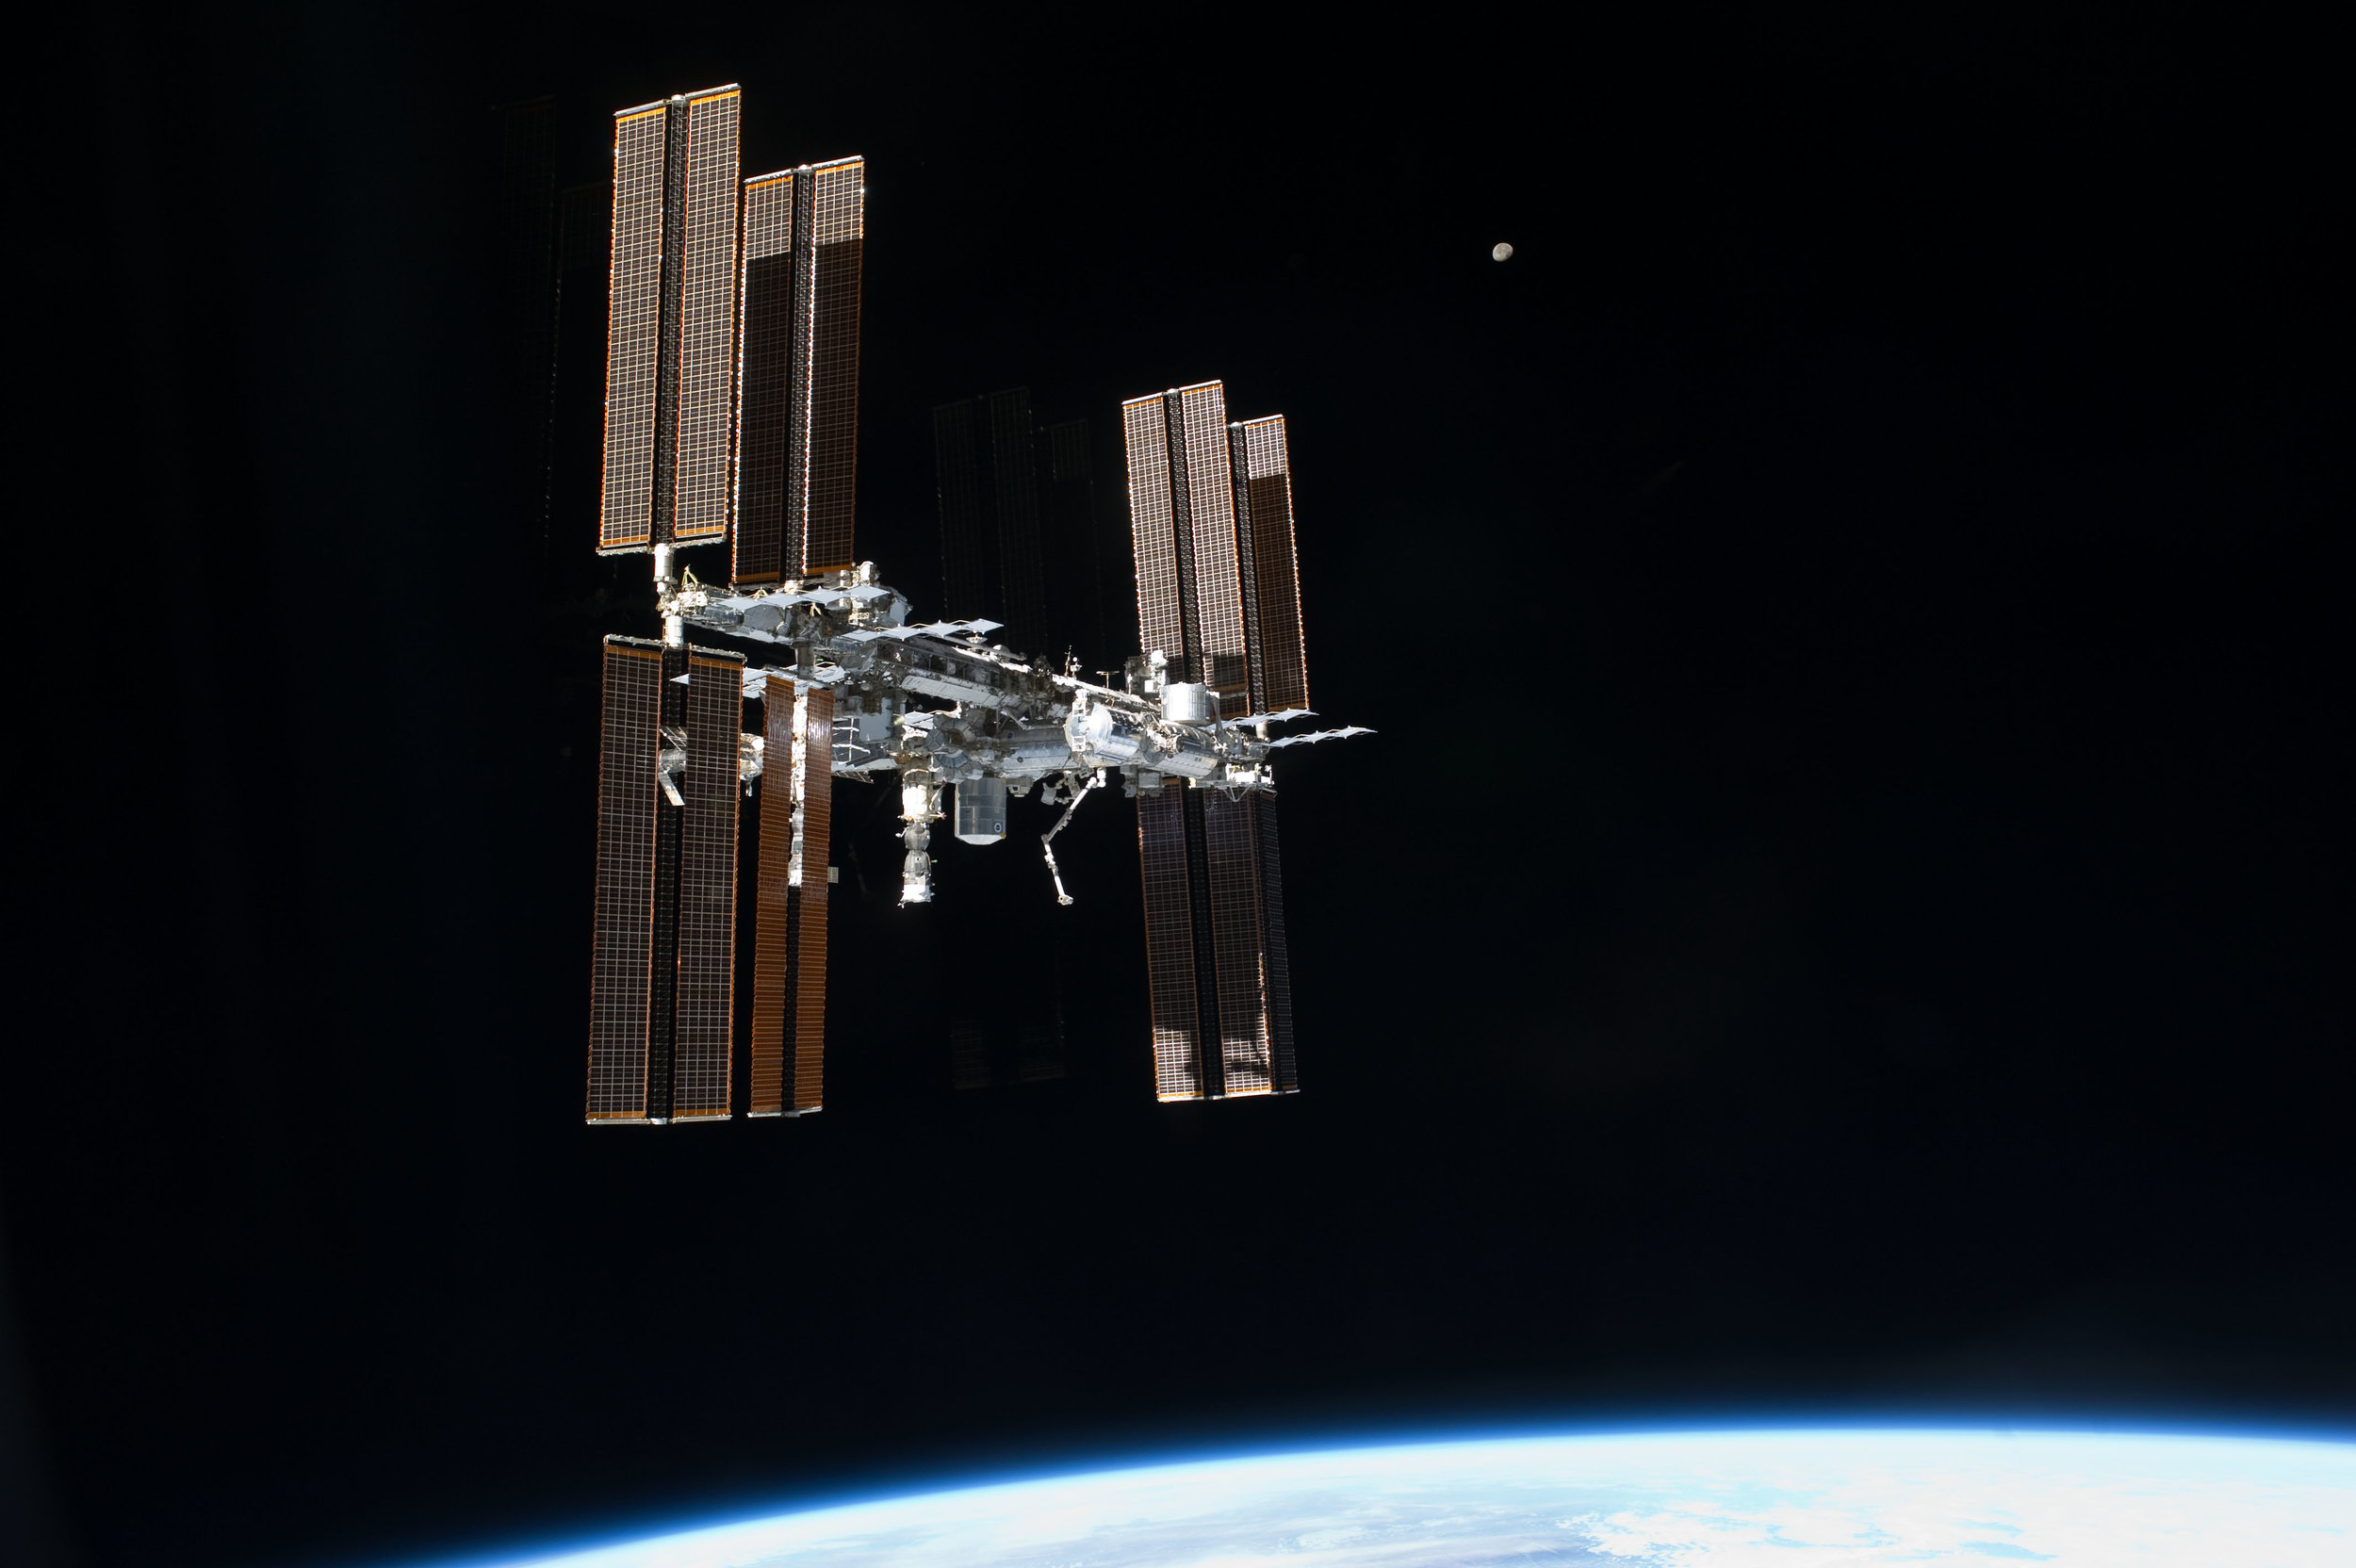 The International Space Station as seen from the departing space shuttle  Atlantis on its final mission, STS-135. Photo Credit: NASA